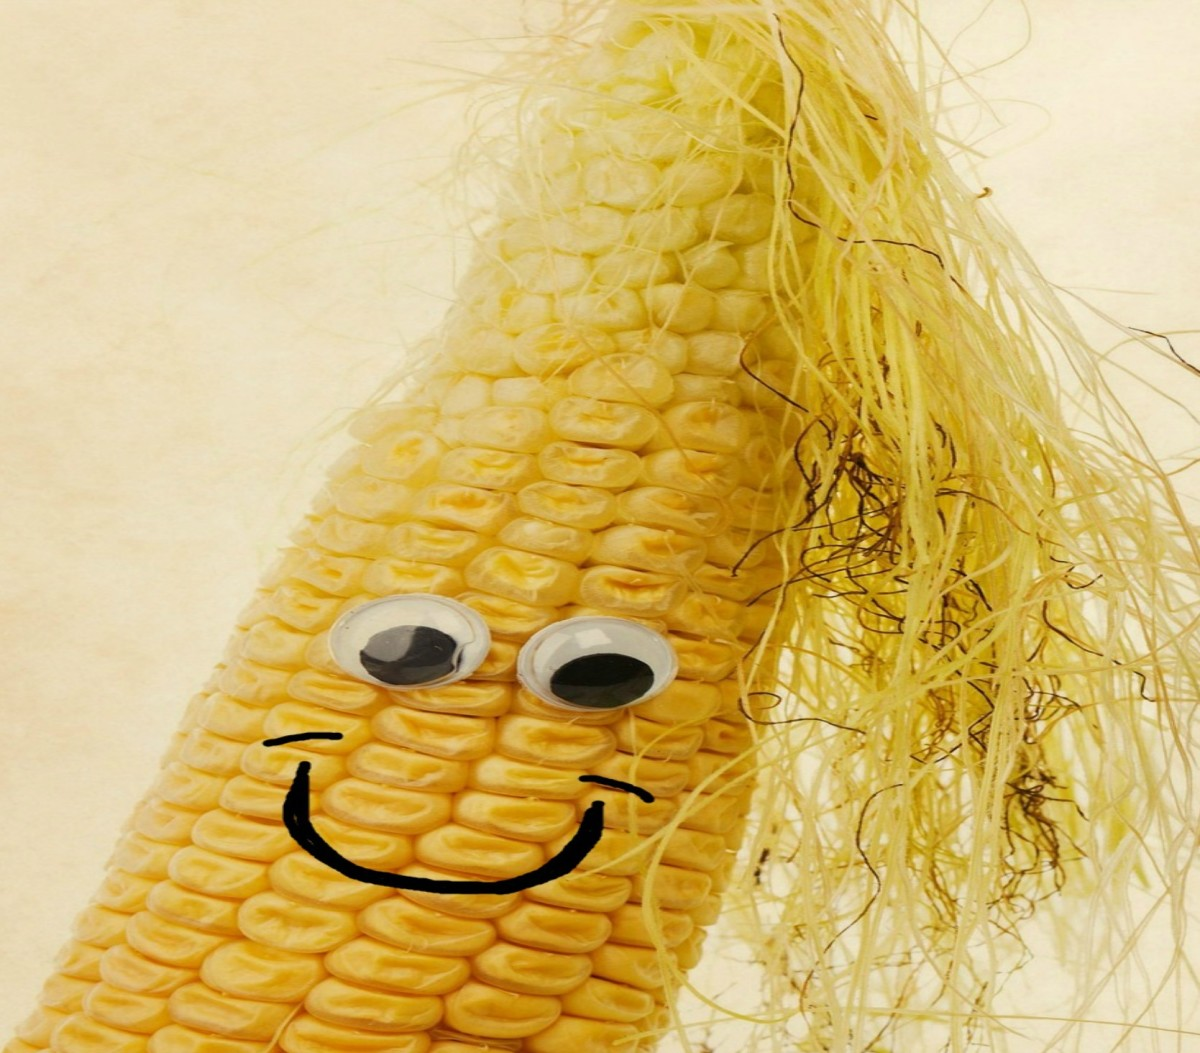 Corny jokes can make us smile...or groan.